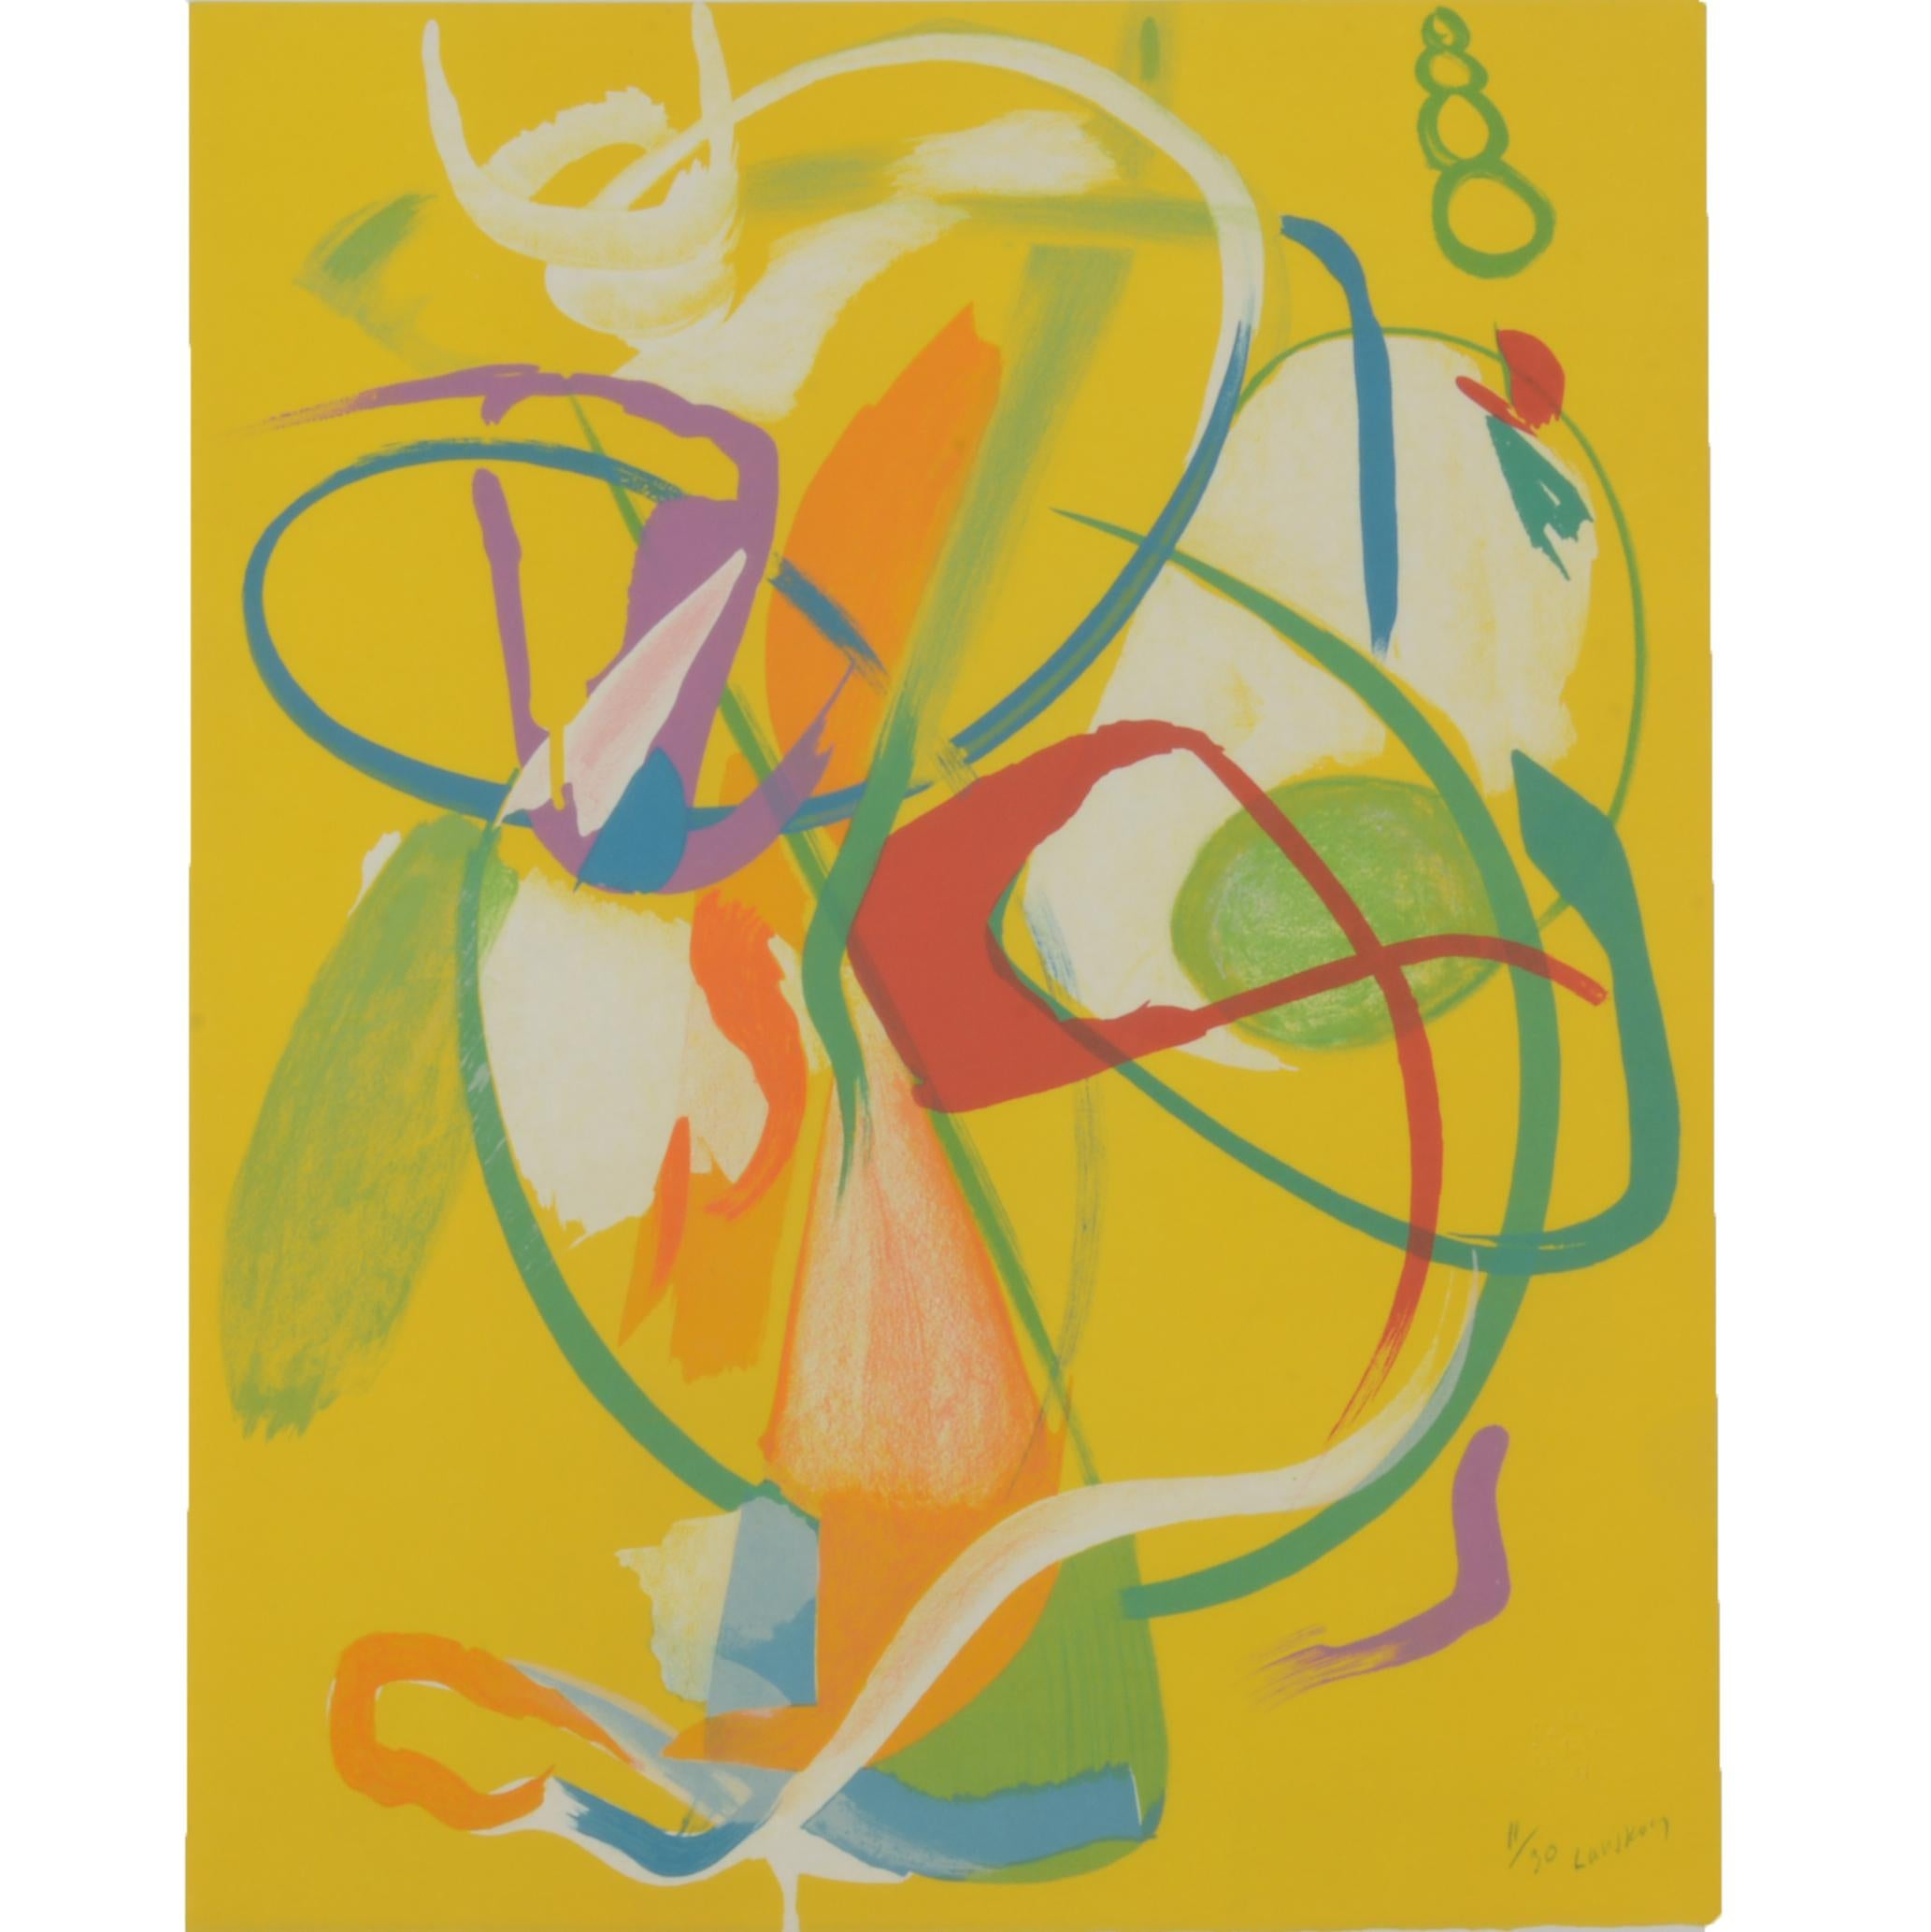 Andre Lanskoy Abstract Limited Edition Signed Print from La Genese